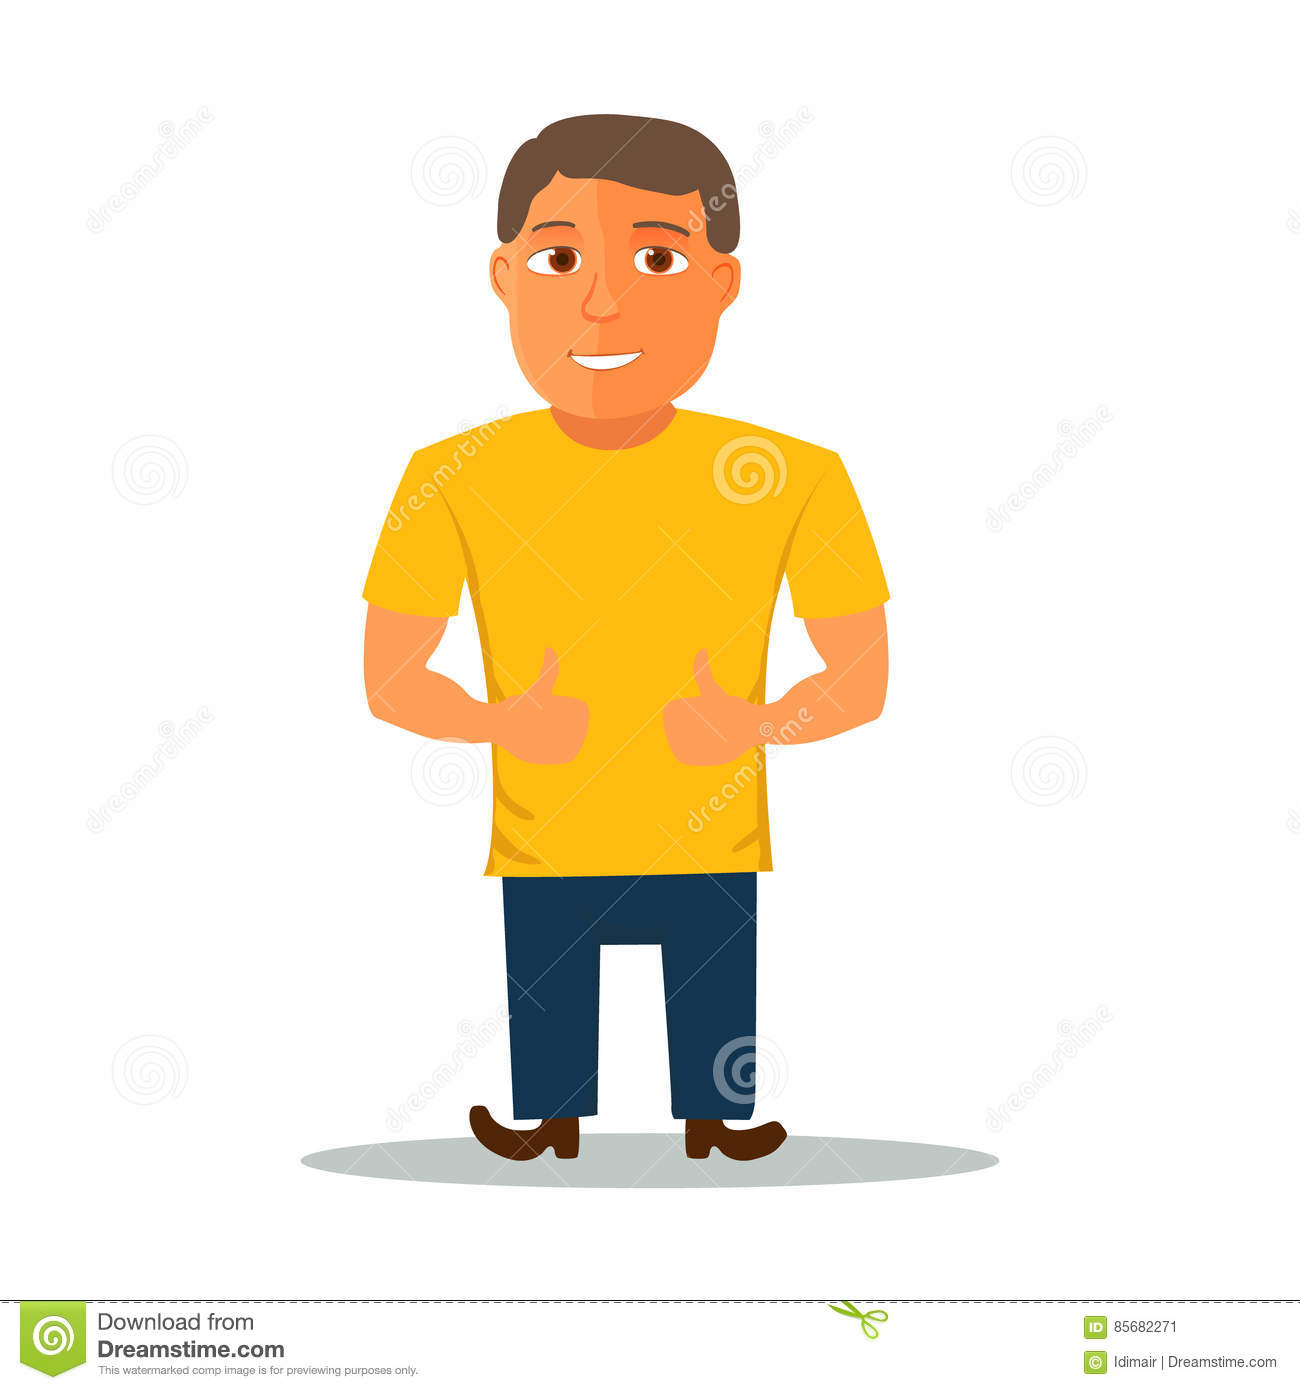 T Shirts Cartoon Characters : Cartoon character in yellow t shirt vector stock